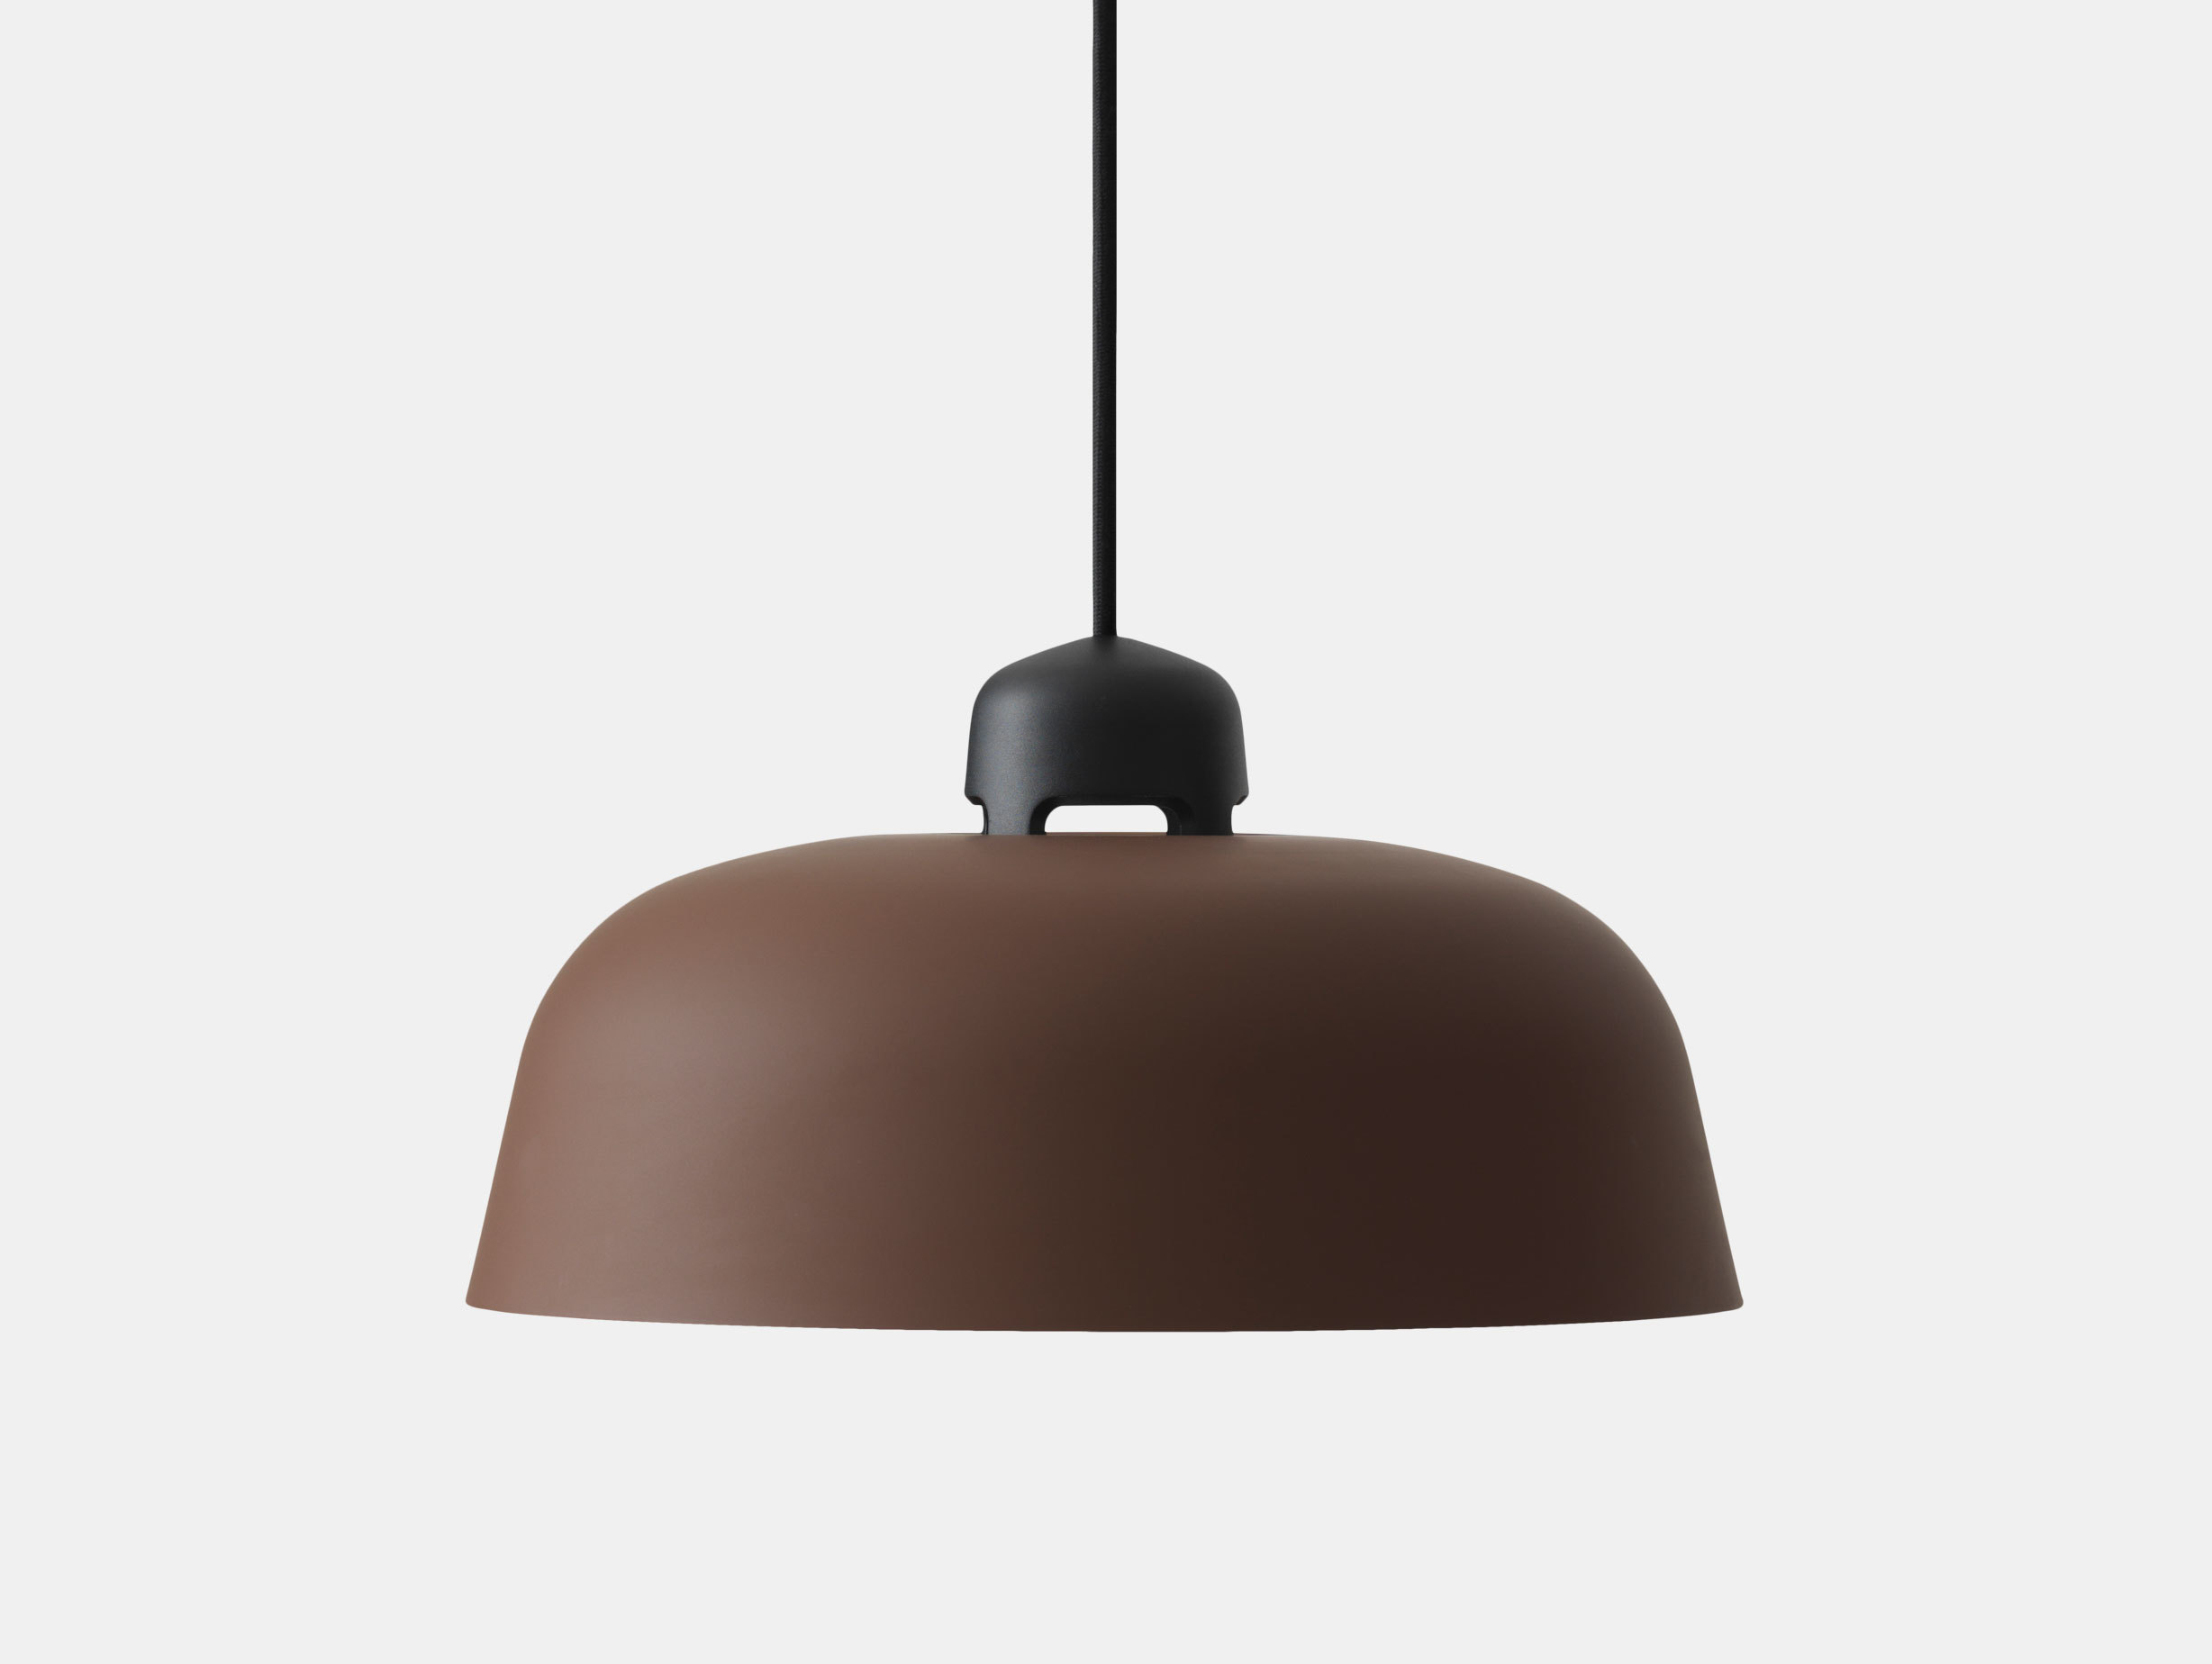 Wastberg W162 Dalston Pendant Light Black Brown Sam Hecht Kim Colin